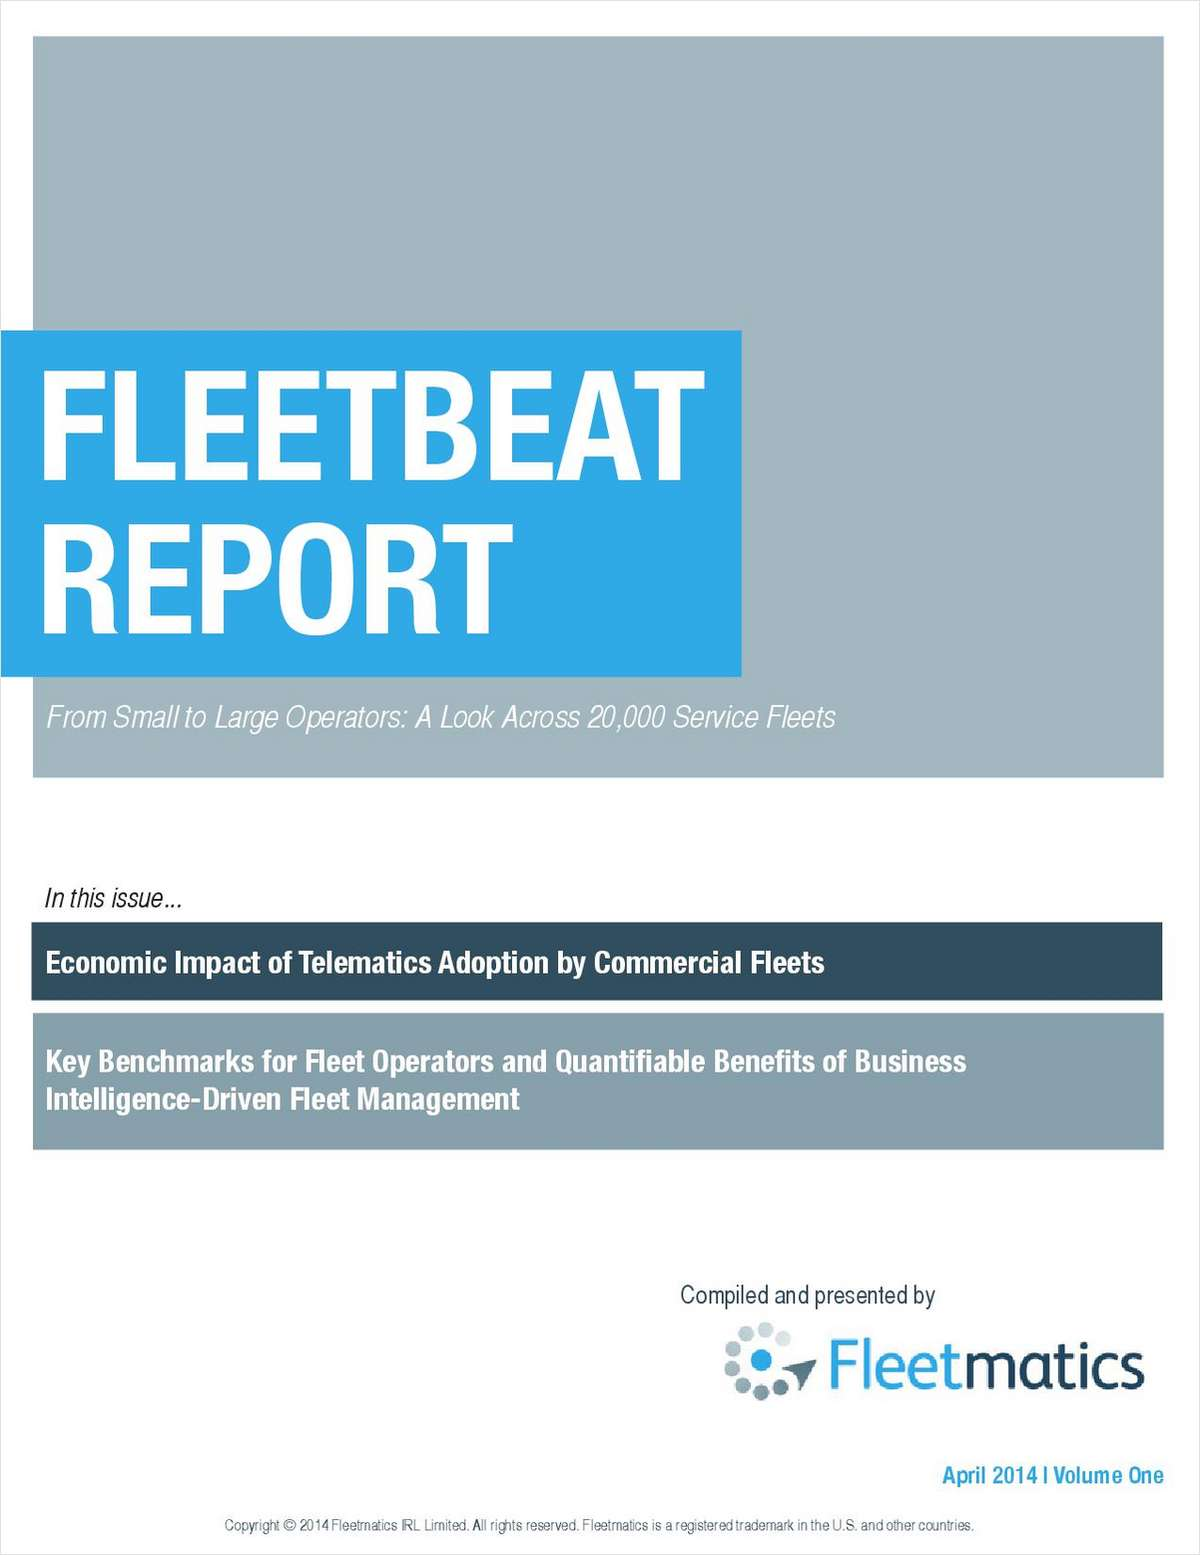 Key Benchmarks for Fleet Operators and Quantifiable Benefits of Business Intelligence-Driven Fleet Management Compiled